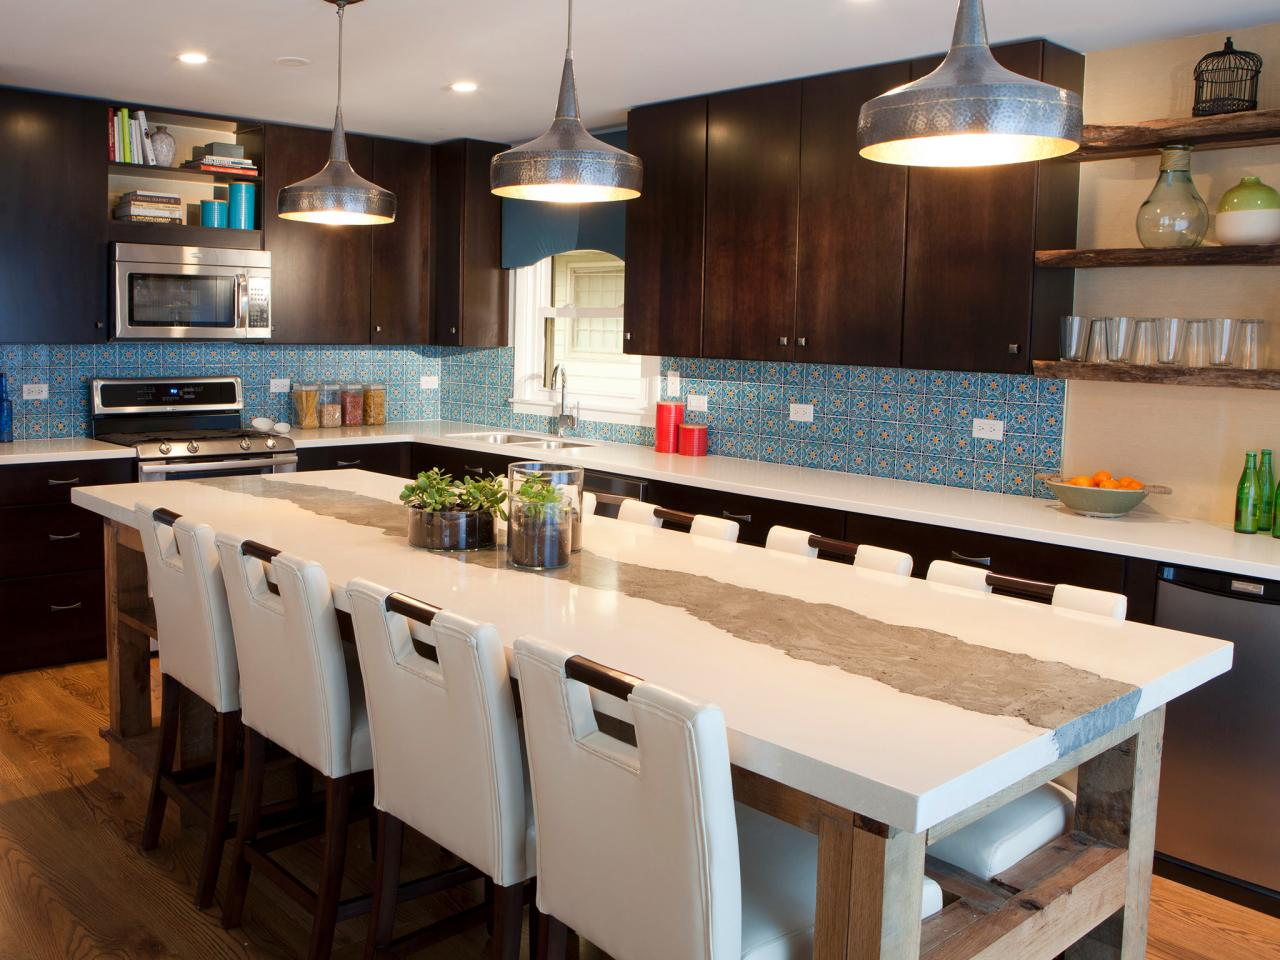 Kitchen island breakfast bar pictures ideas from hgtv for Big island kitchen design